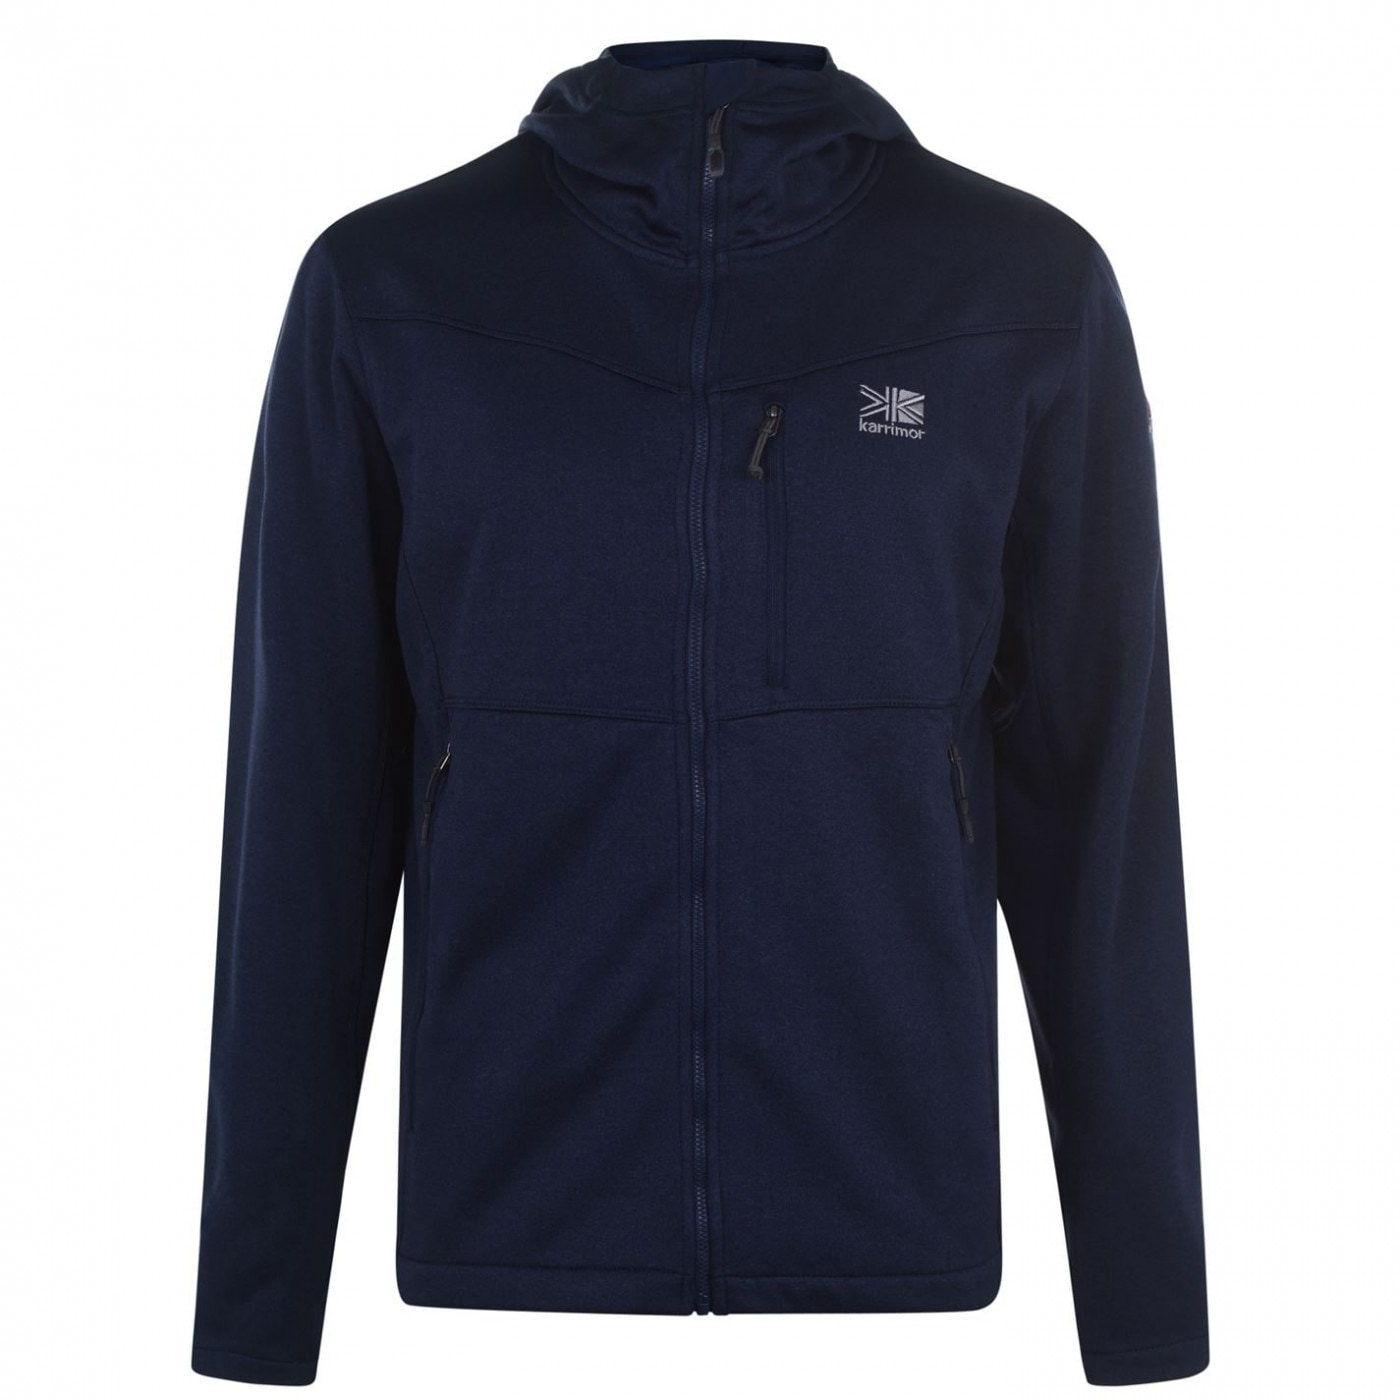 Men's sweatshirt Karrimor Hot Rock